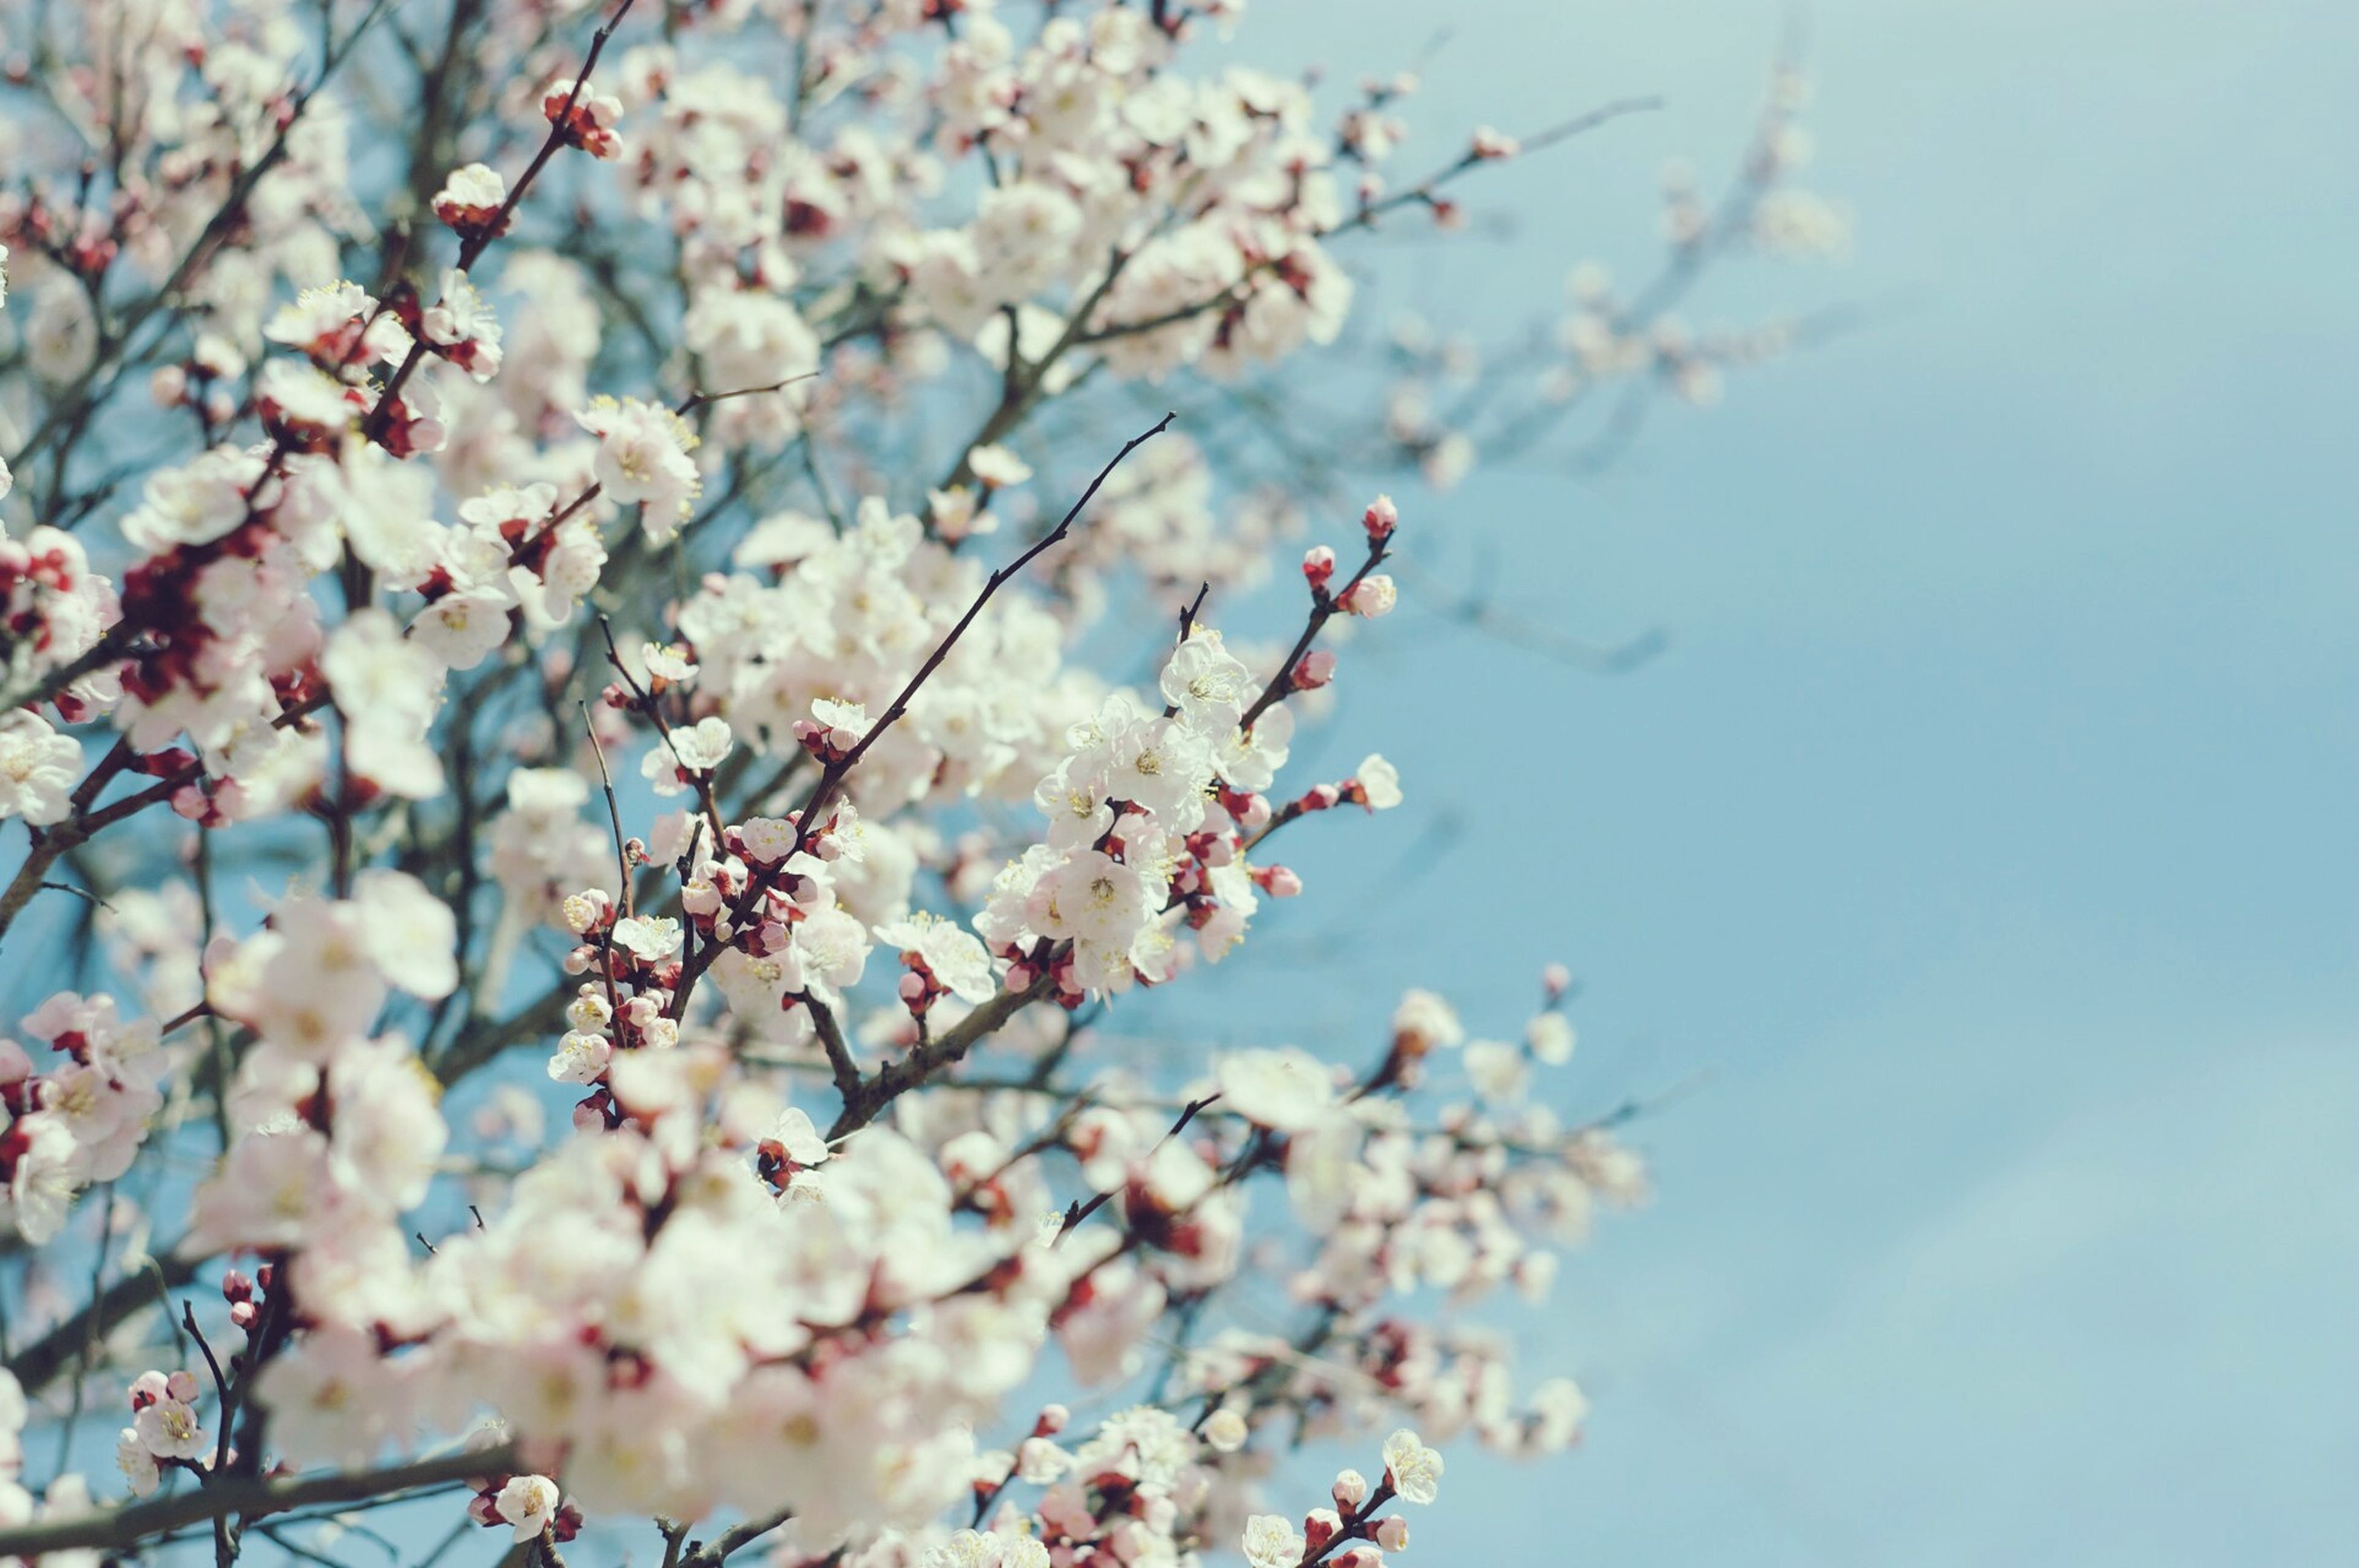 flower, freshness, branch, growth, tree, fragility, cherry blossom, beauty in nature, blossom, nature, cherry tree, low angle view, springtime, blooming, petal, in bloom, twig, focus on foreground, close-up, fruit tree